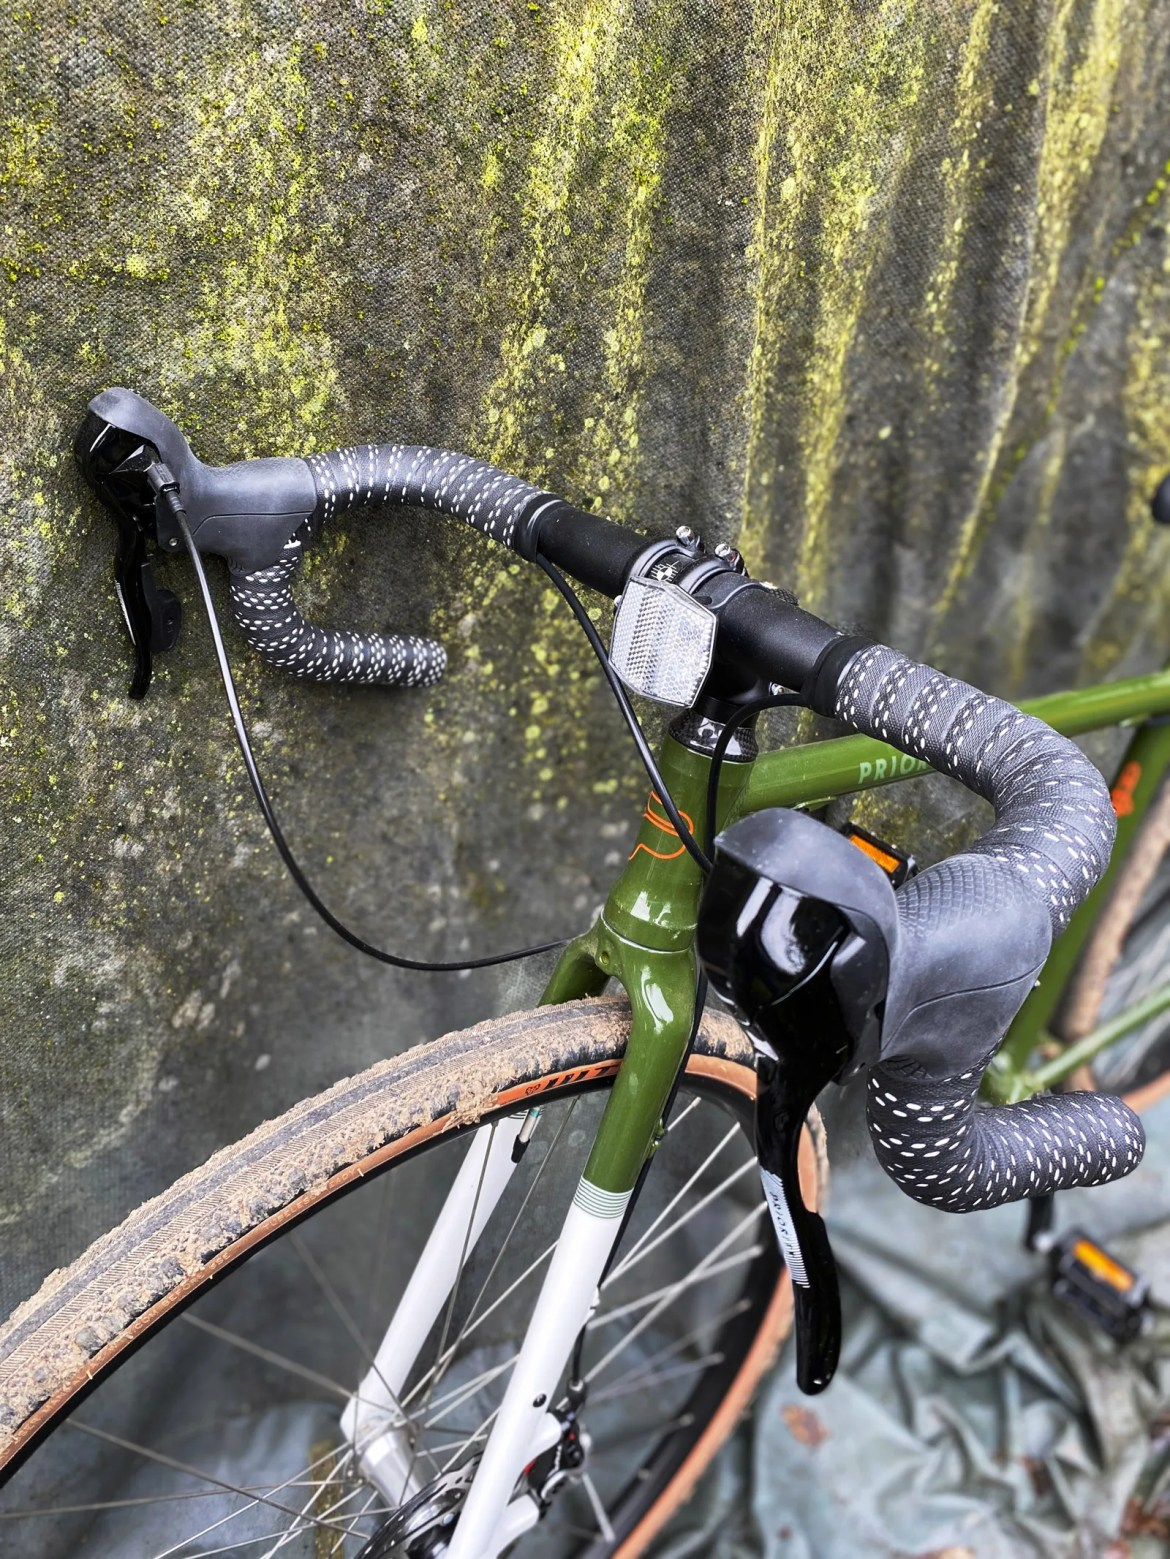 Priority Apollo Gravel Review A Bike for Roads and Mud